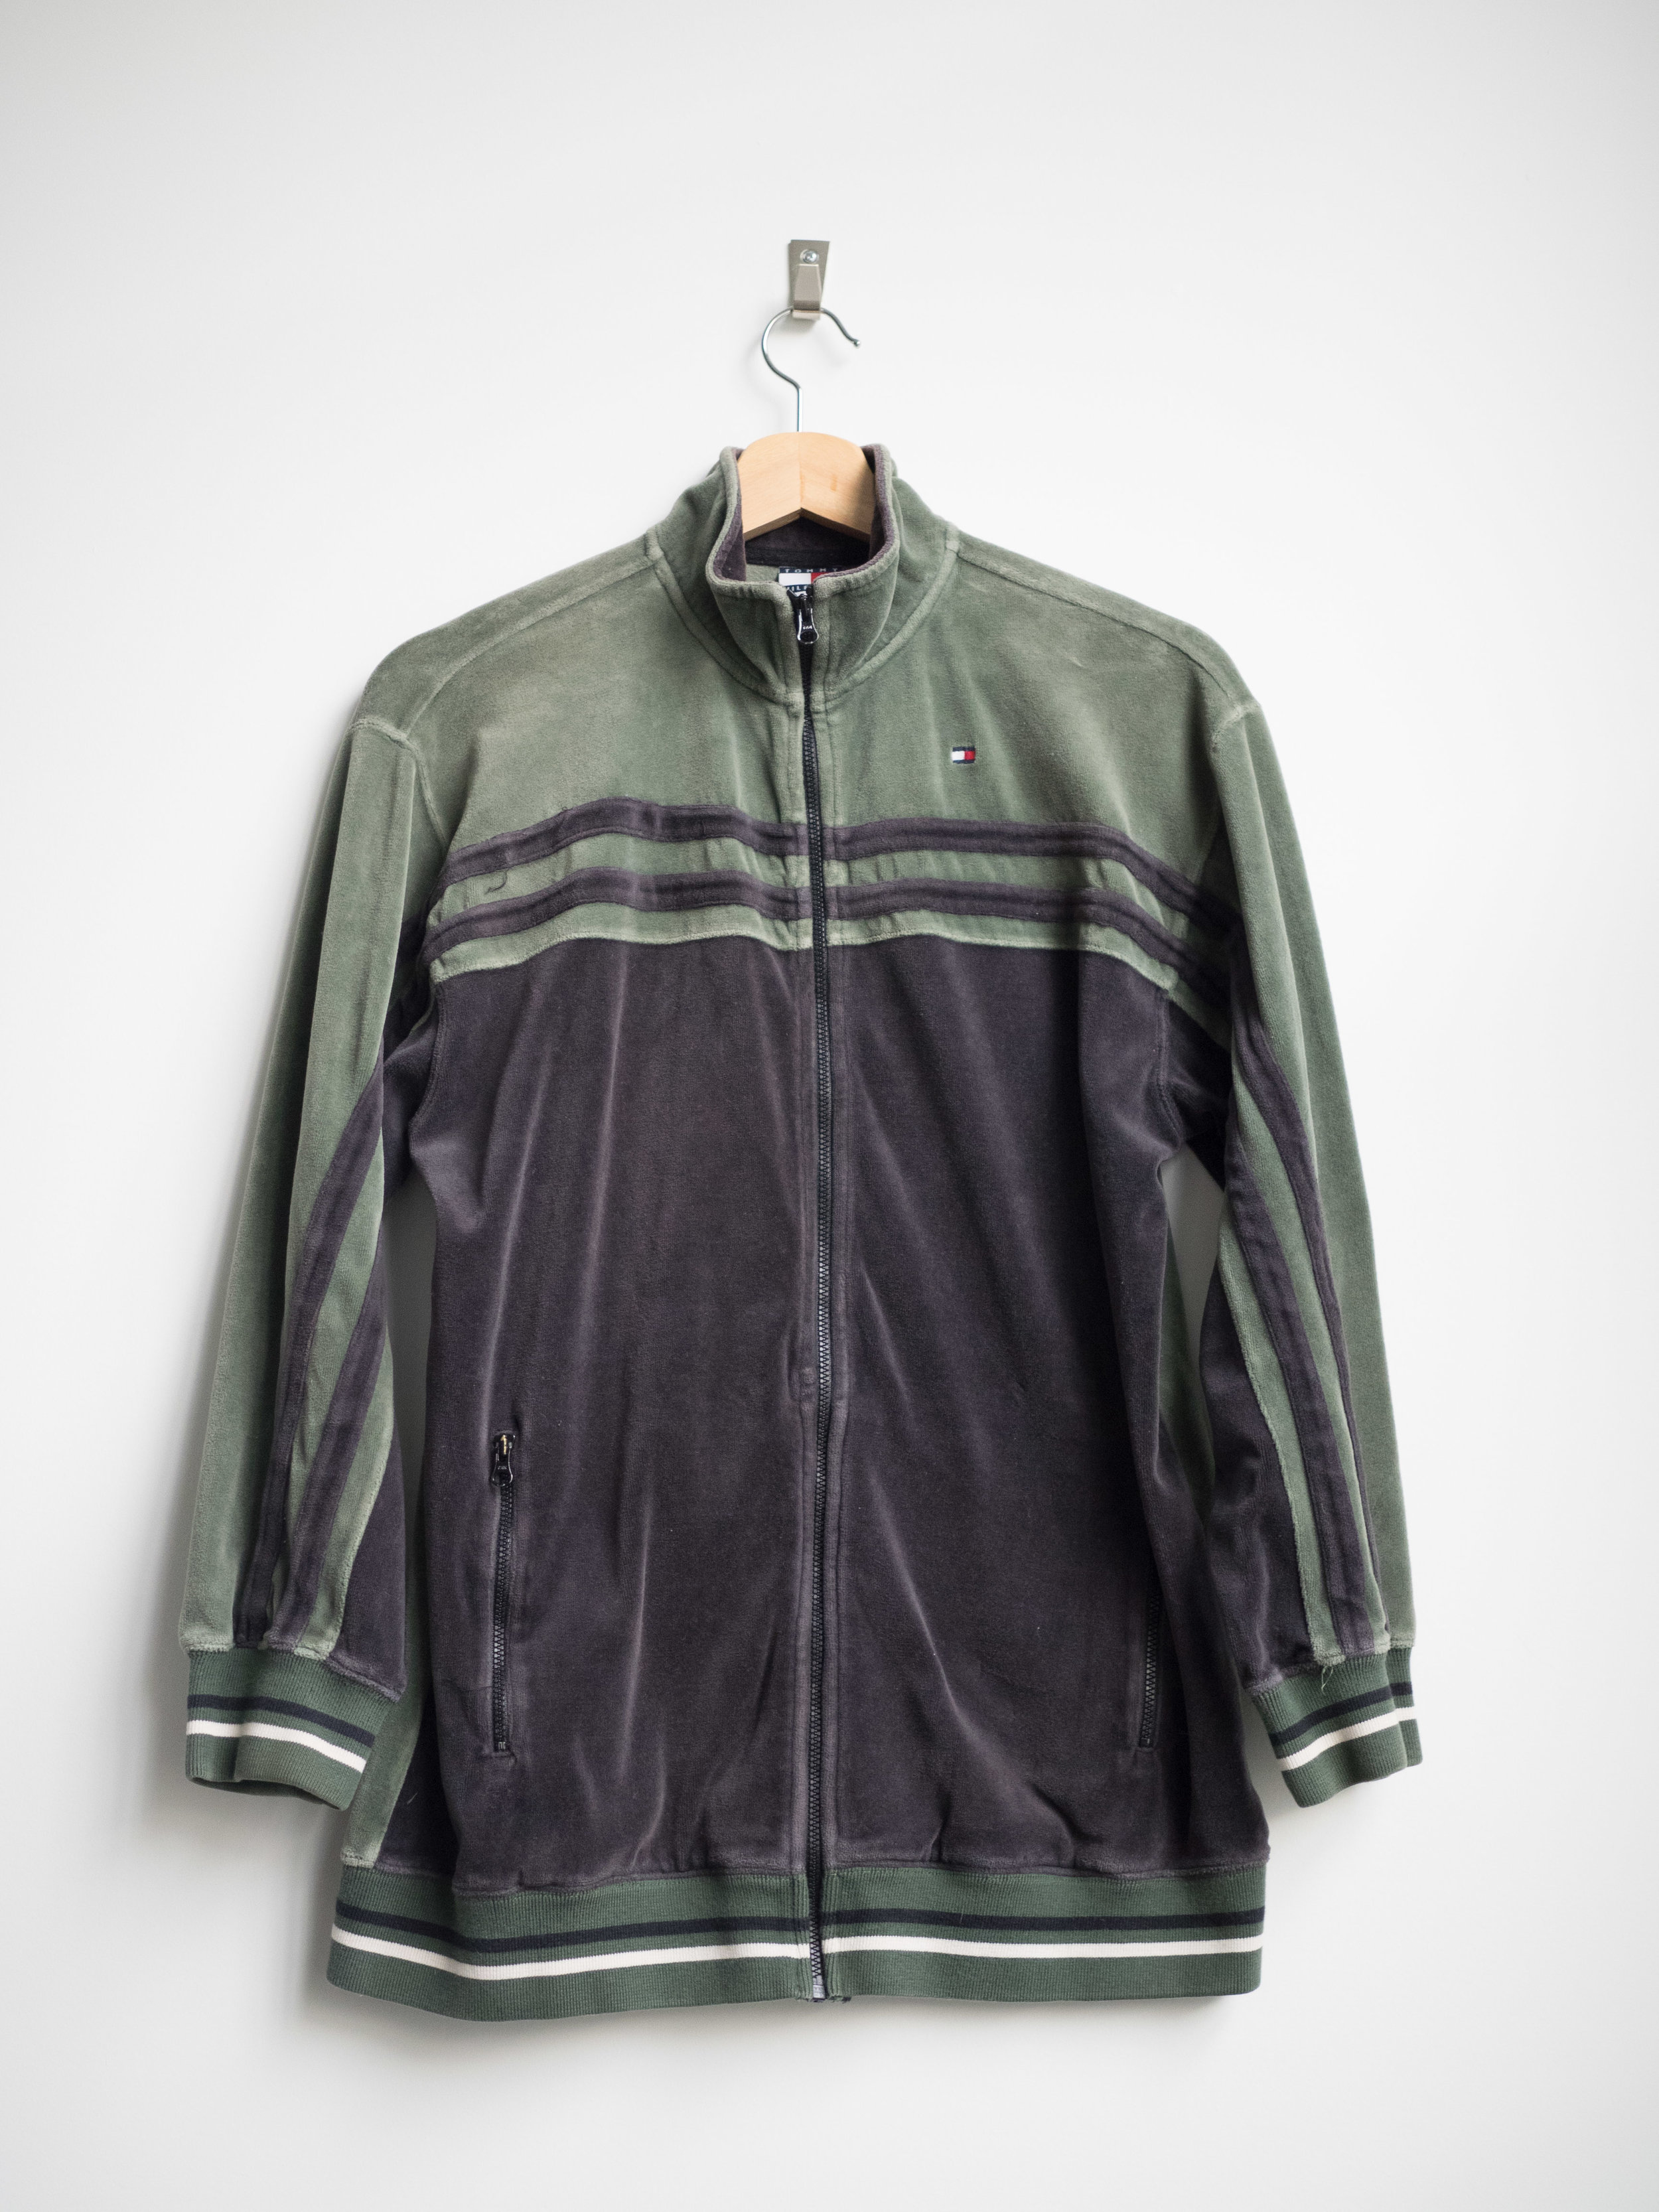 3f44e3906 M - Vintage Tommy Hilfiger Velour Track Jacket - Green/Black — THE  CONSISTENCY PROJECT